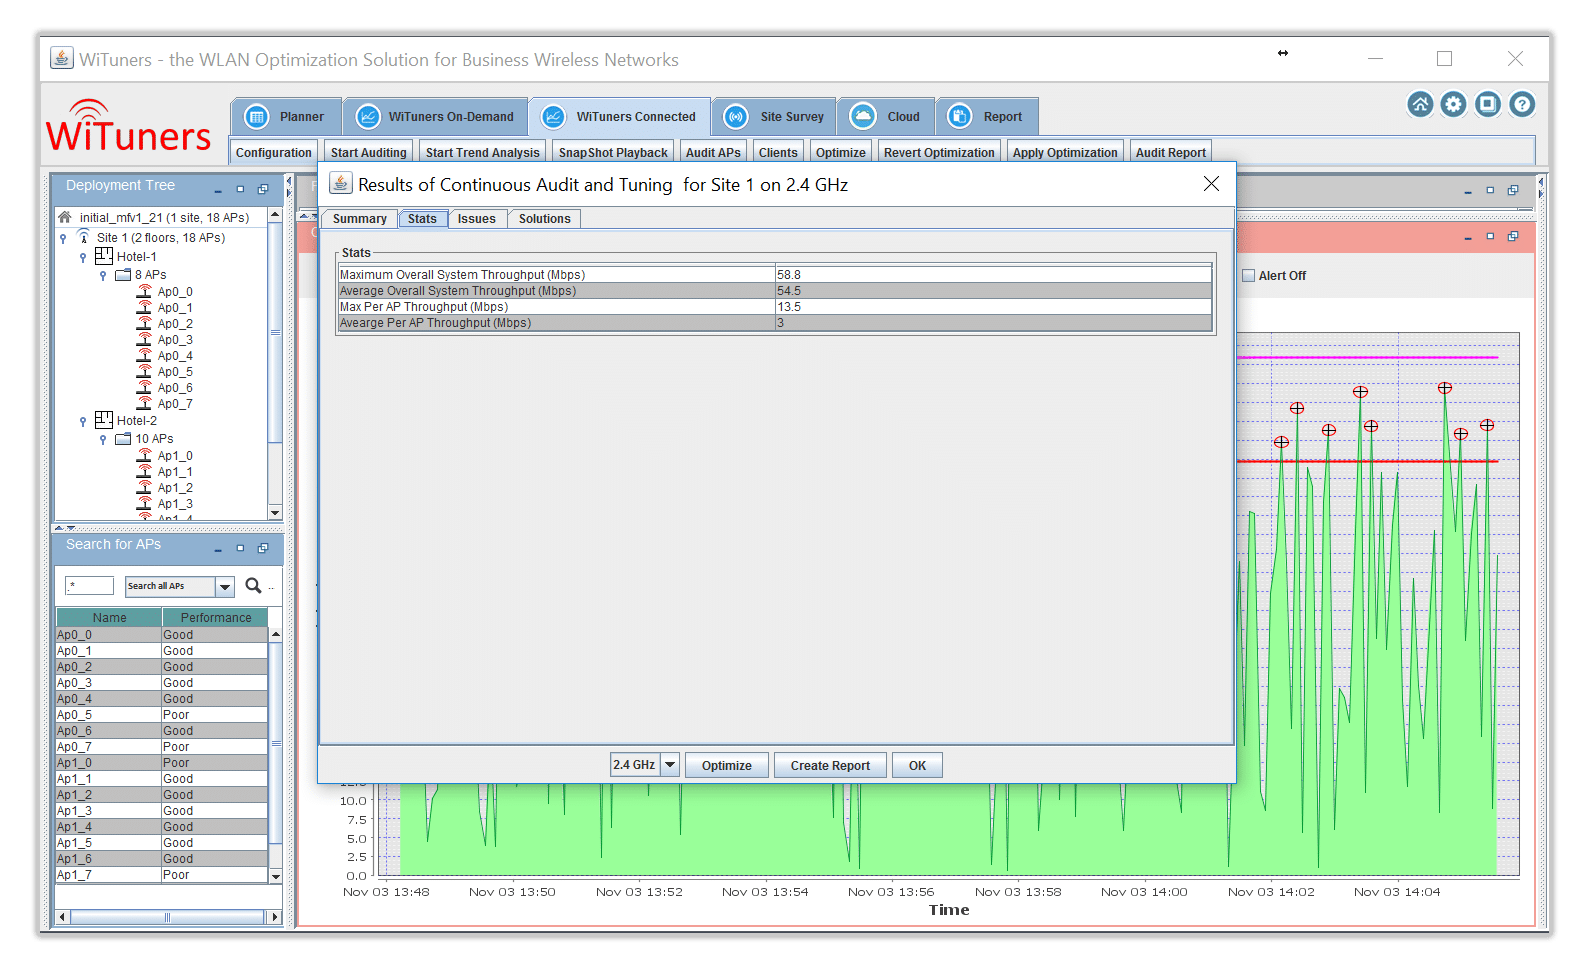 performance stats in WiFi Monitoring Software